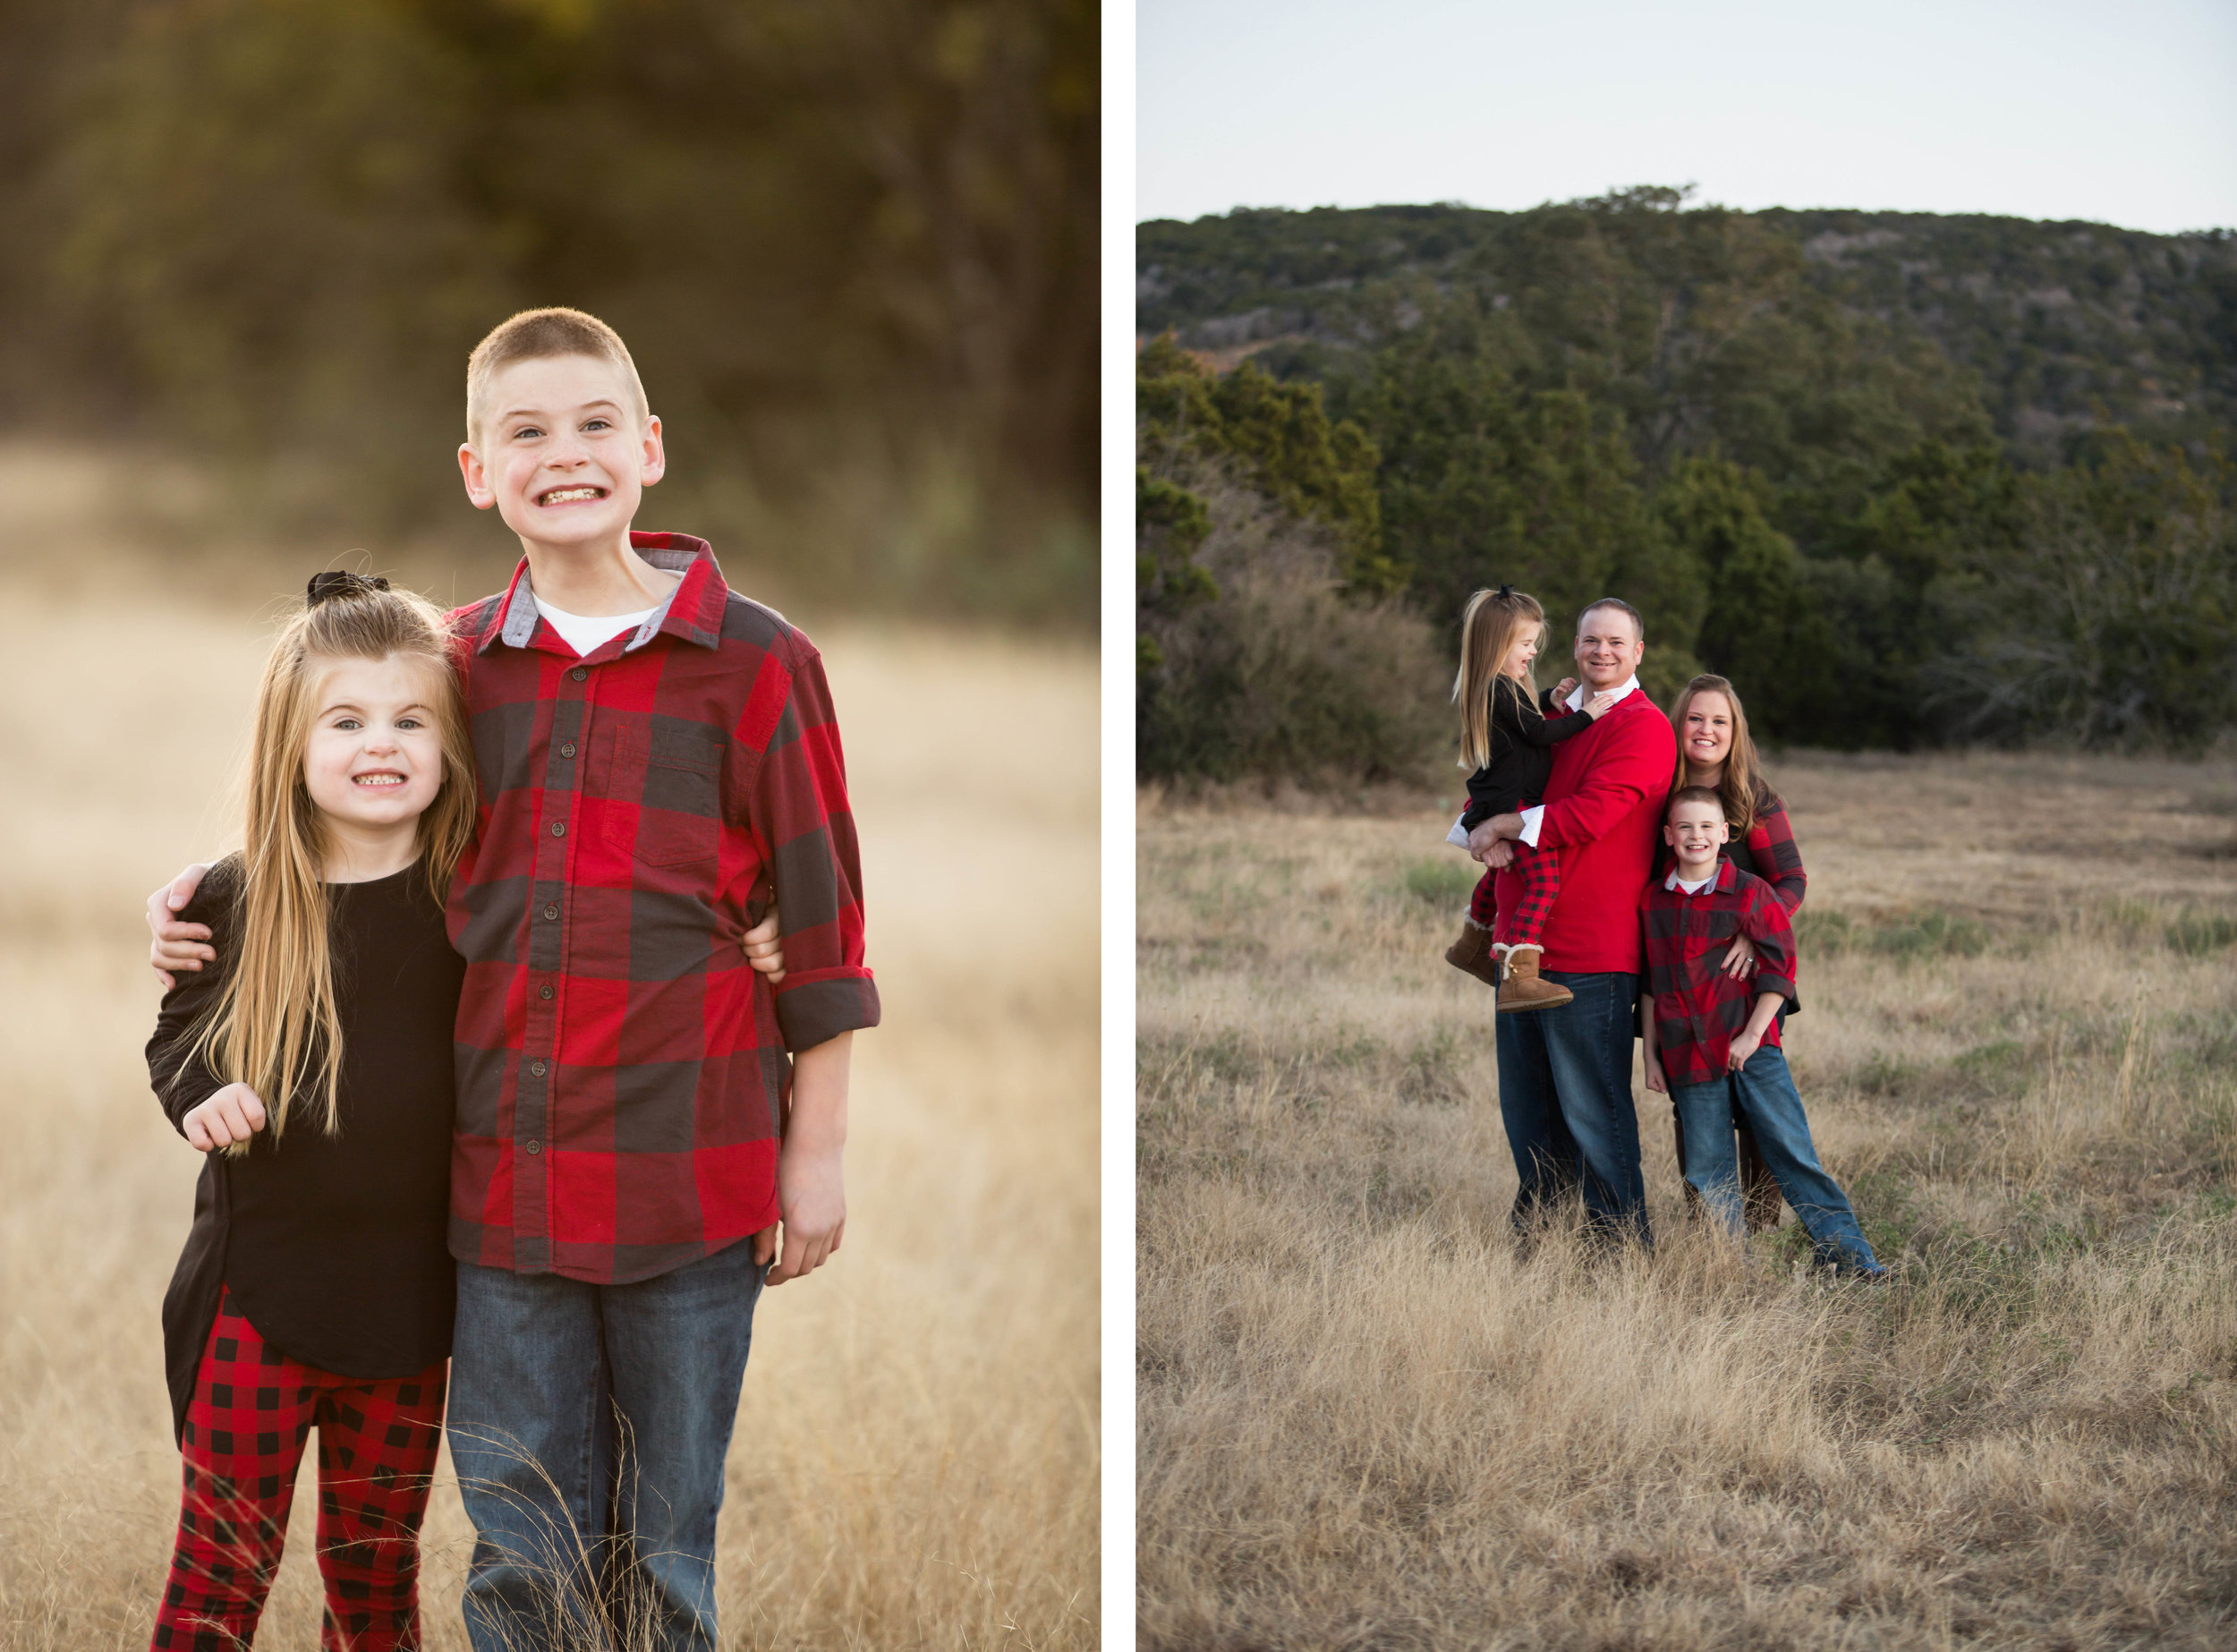 Marble_Falls_Sternad_Family_Photographer_Jenna_Petty_16.jpg